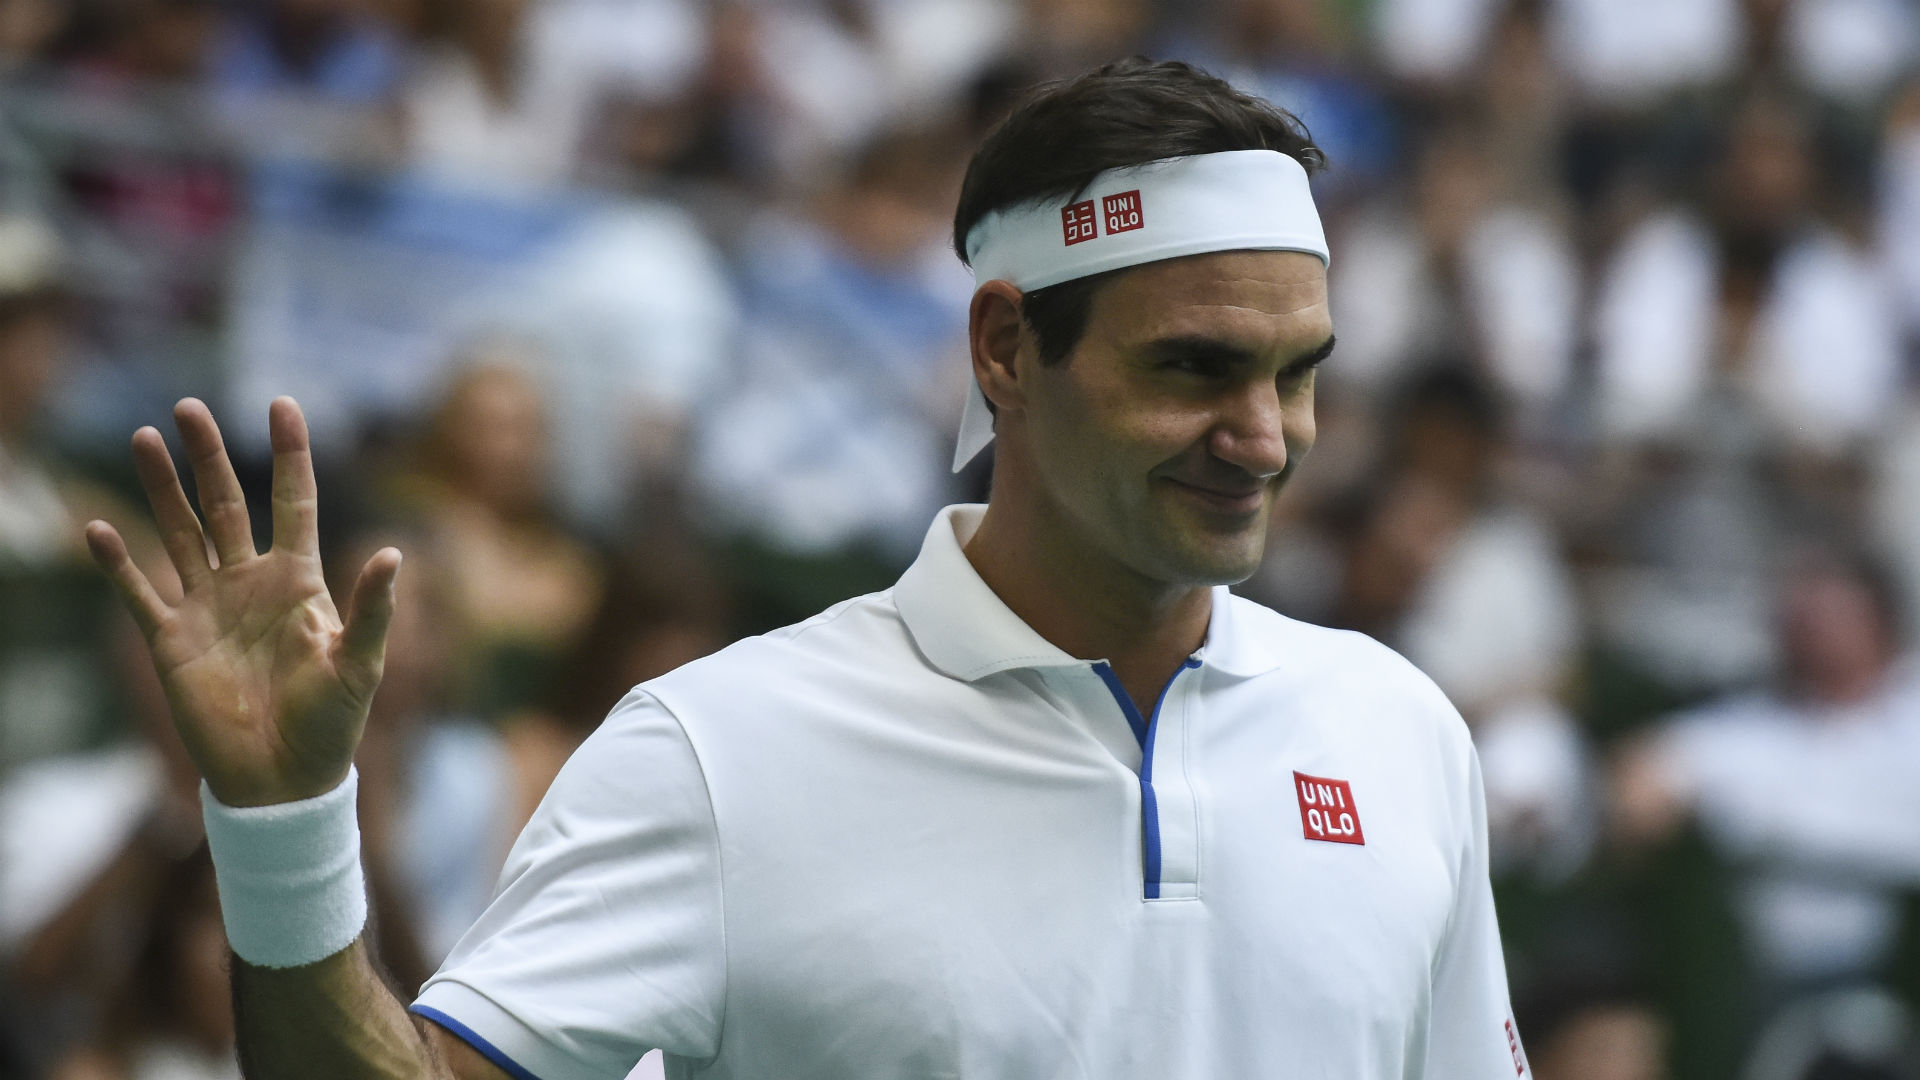 Roger Federer has no plans to bring his career to an end, though the 38-year-old admitted he is relishing the freedom retirement will bring.